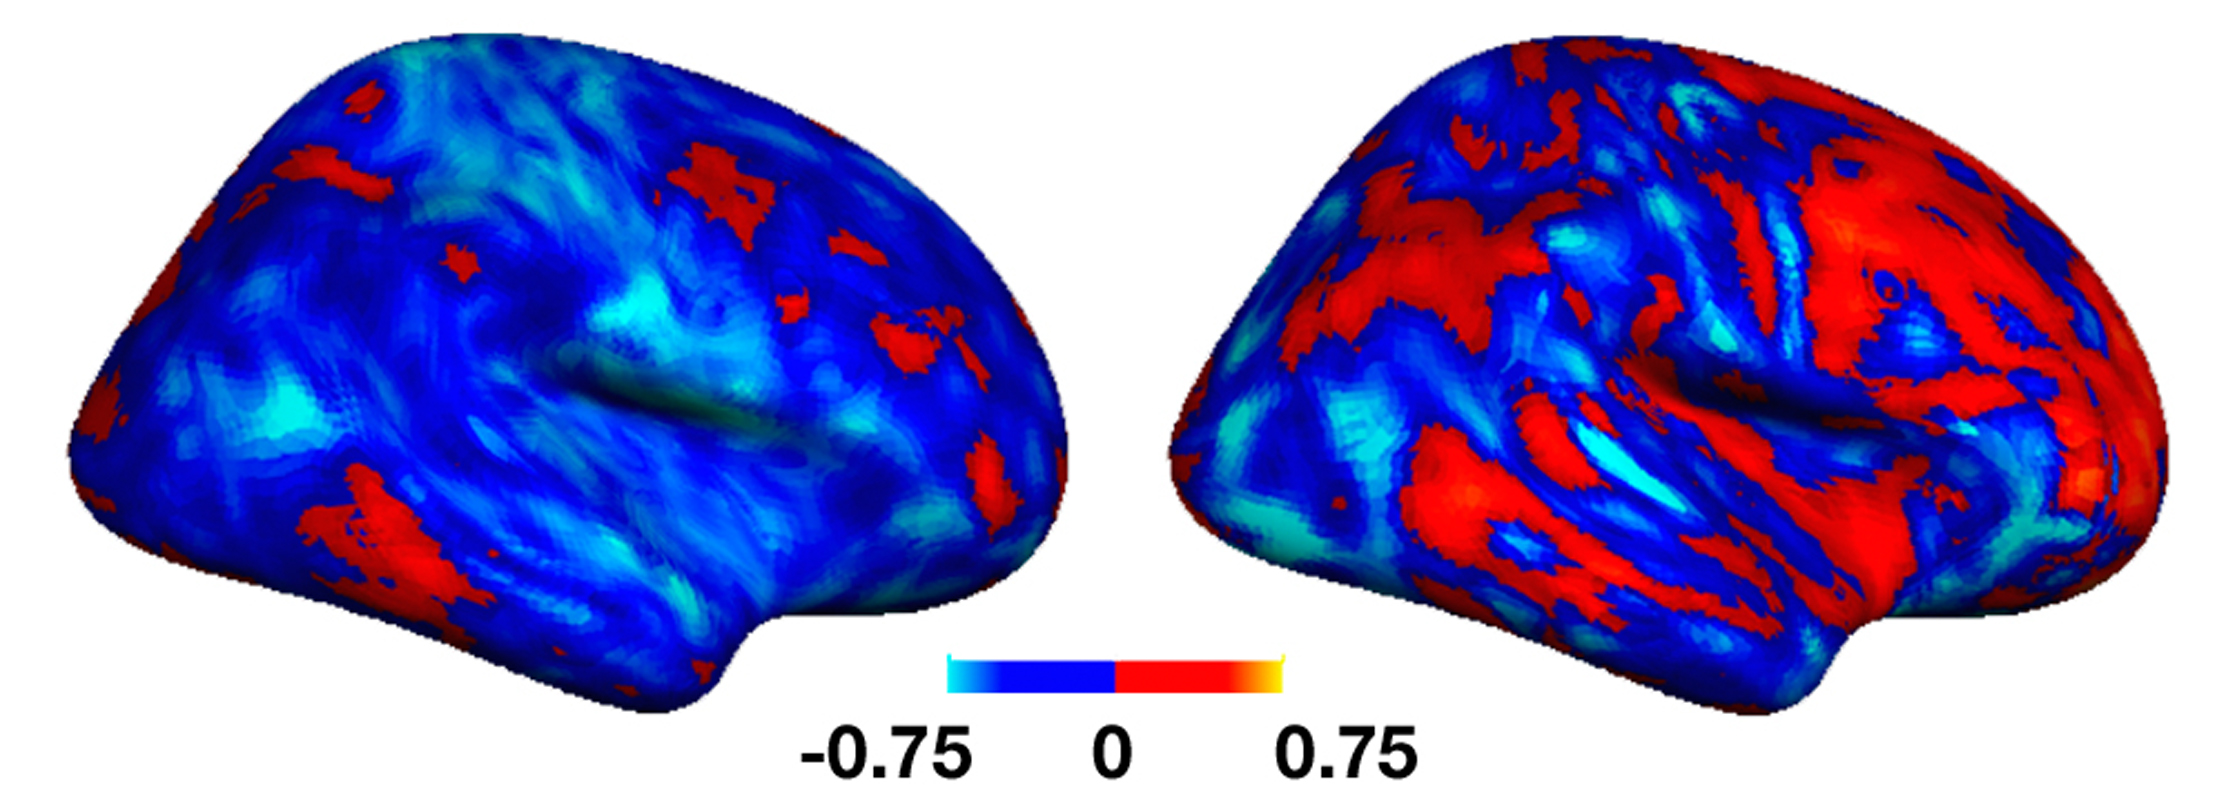 It has been discovered that connectivity patterns differ greatly between individuals with and without autism.The left image represents a less affected individual, while the individual represented by the right image is more affected. (credit: Marlene Behrmann)